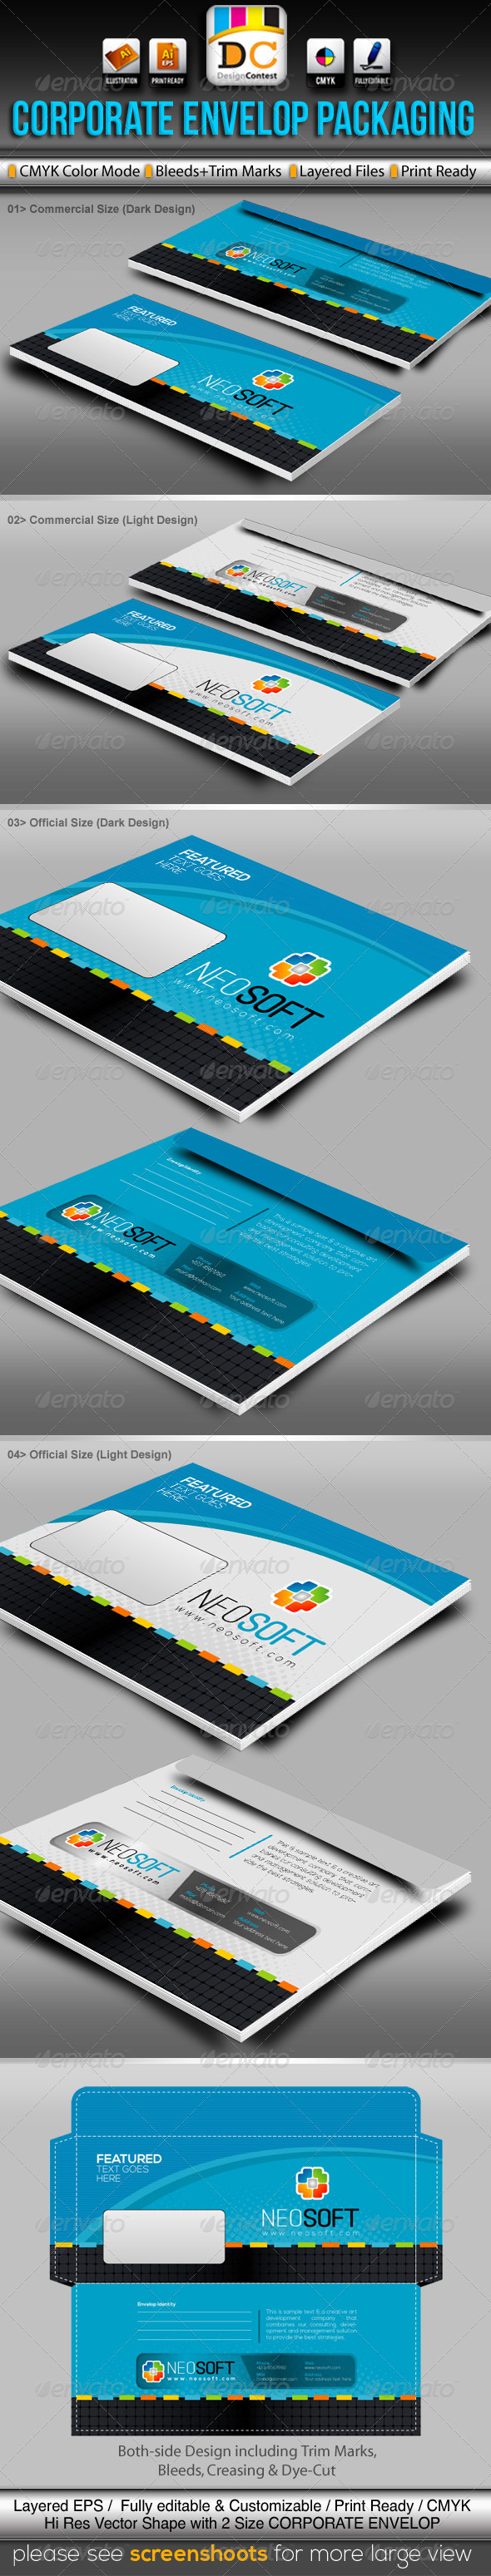 GraphicRiver NeoSoft Official Envelop Packaging 3477756